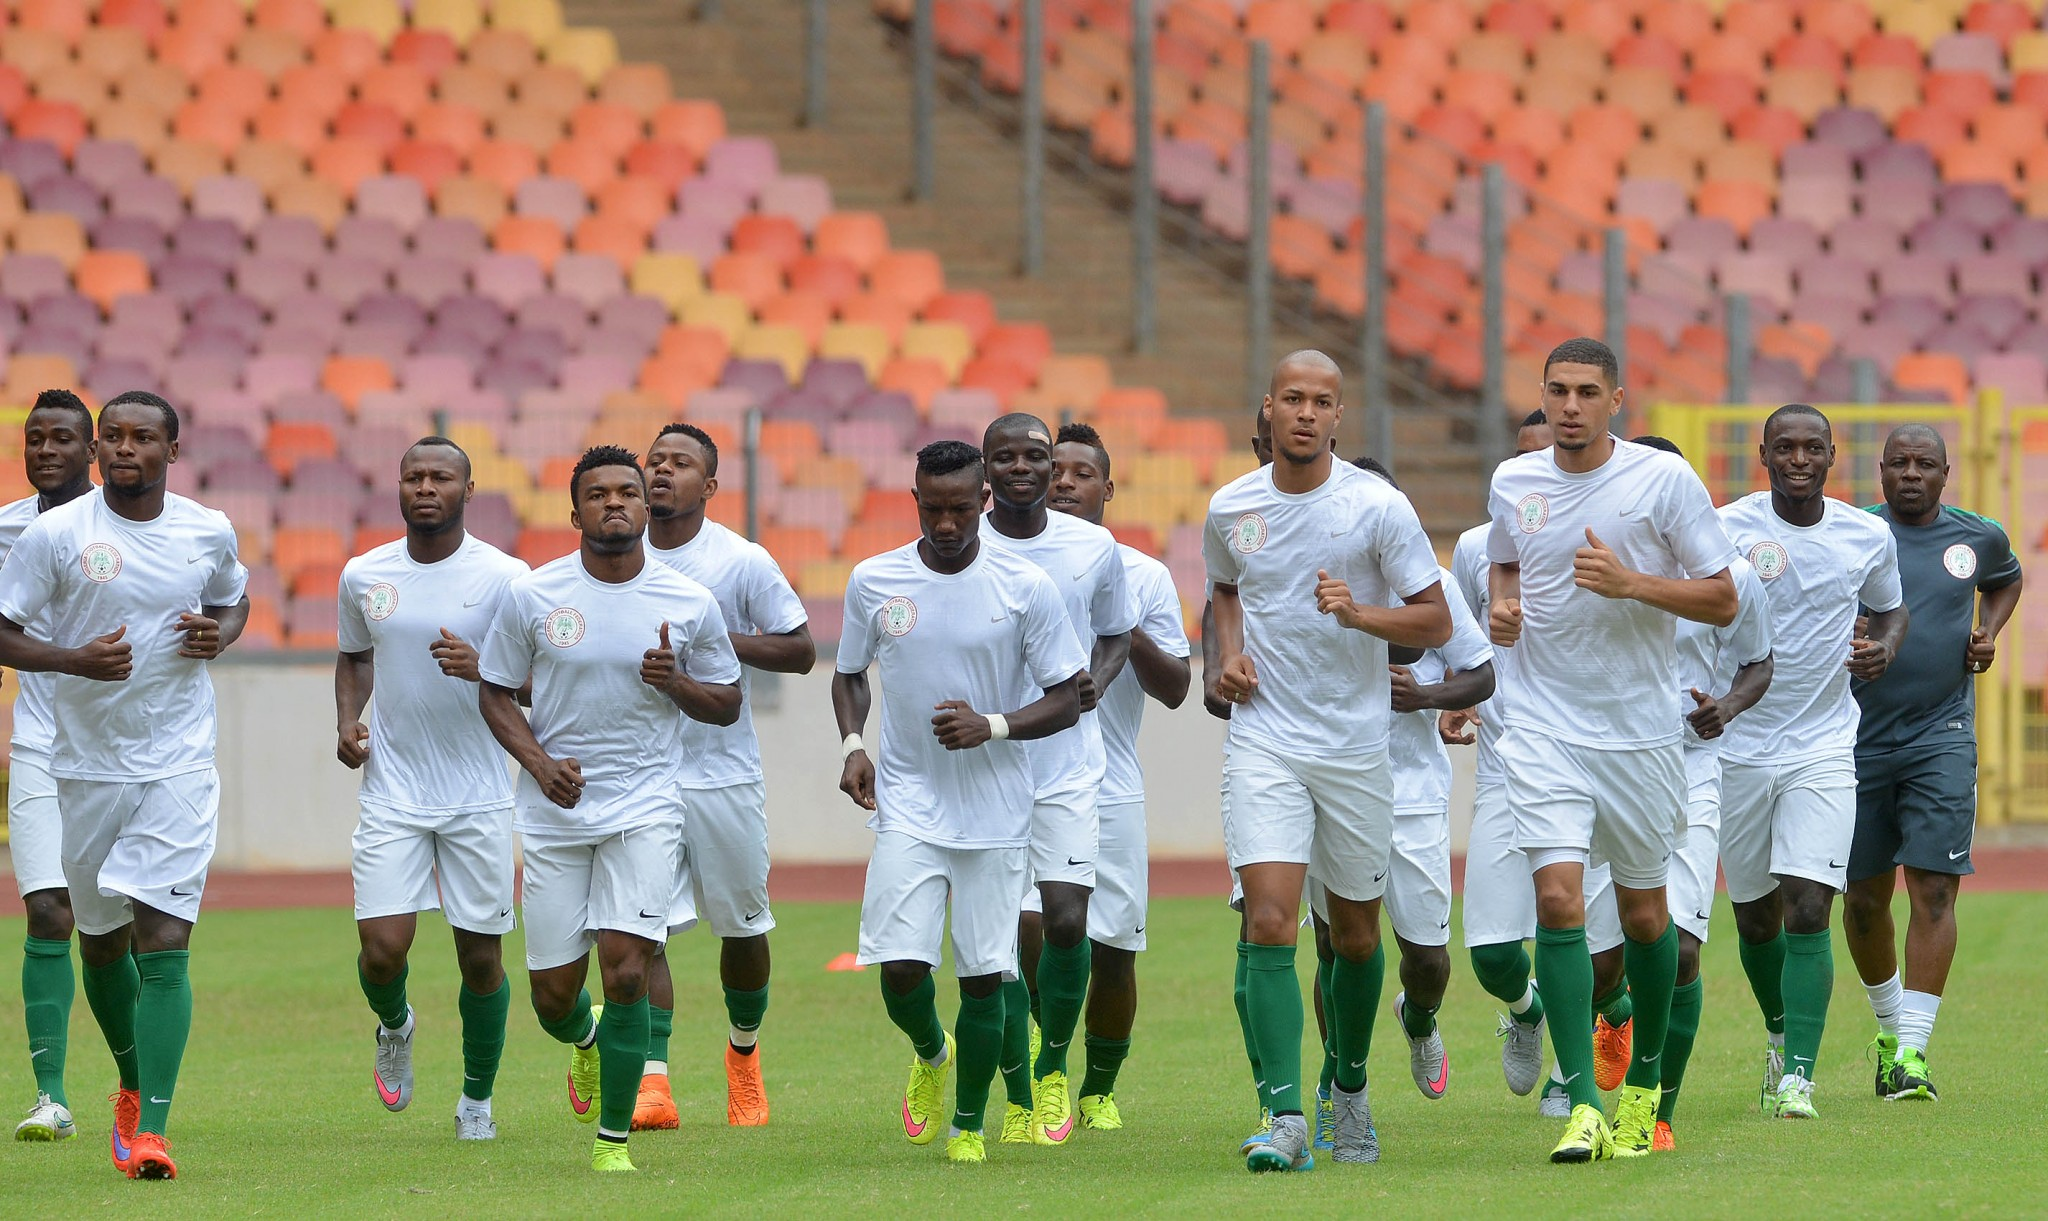 Rohr calls up Echiejile, Ogu, Iheanacho, 22 others for Corsica camp and friendly match